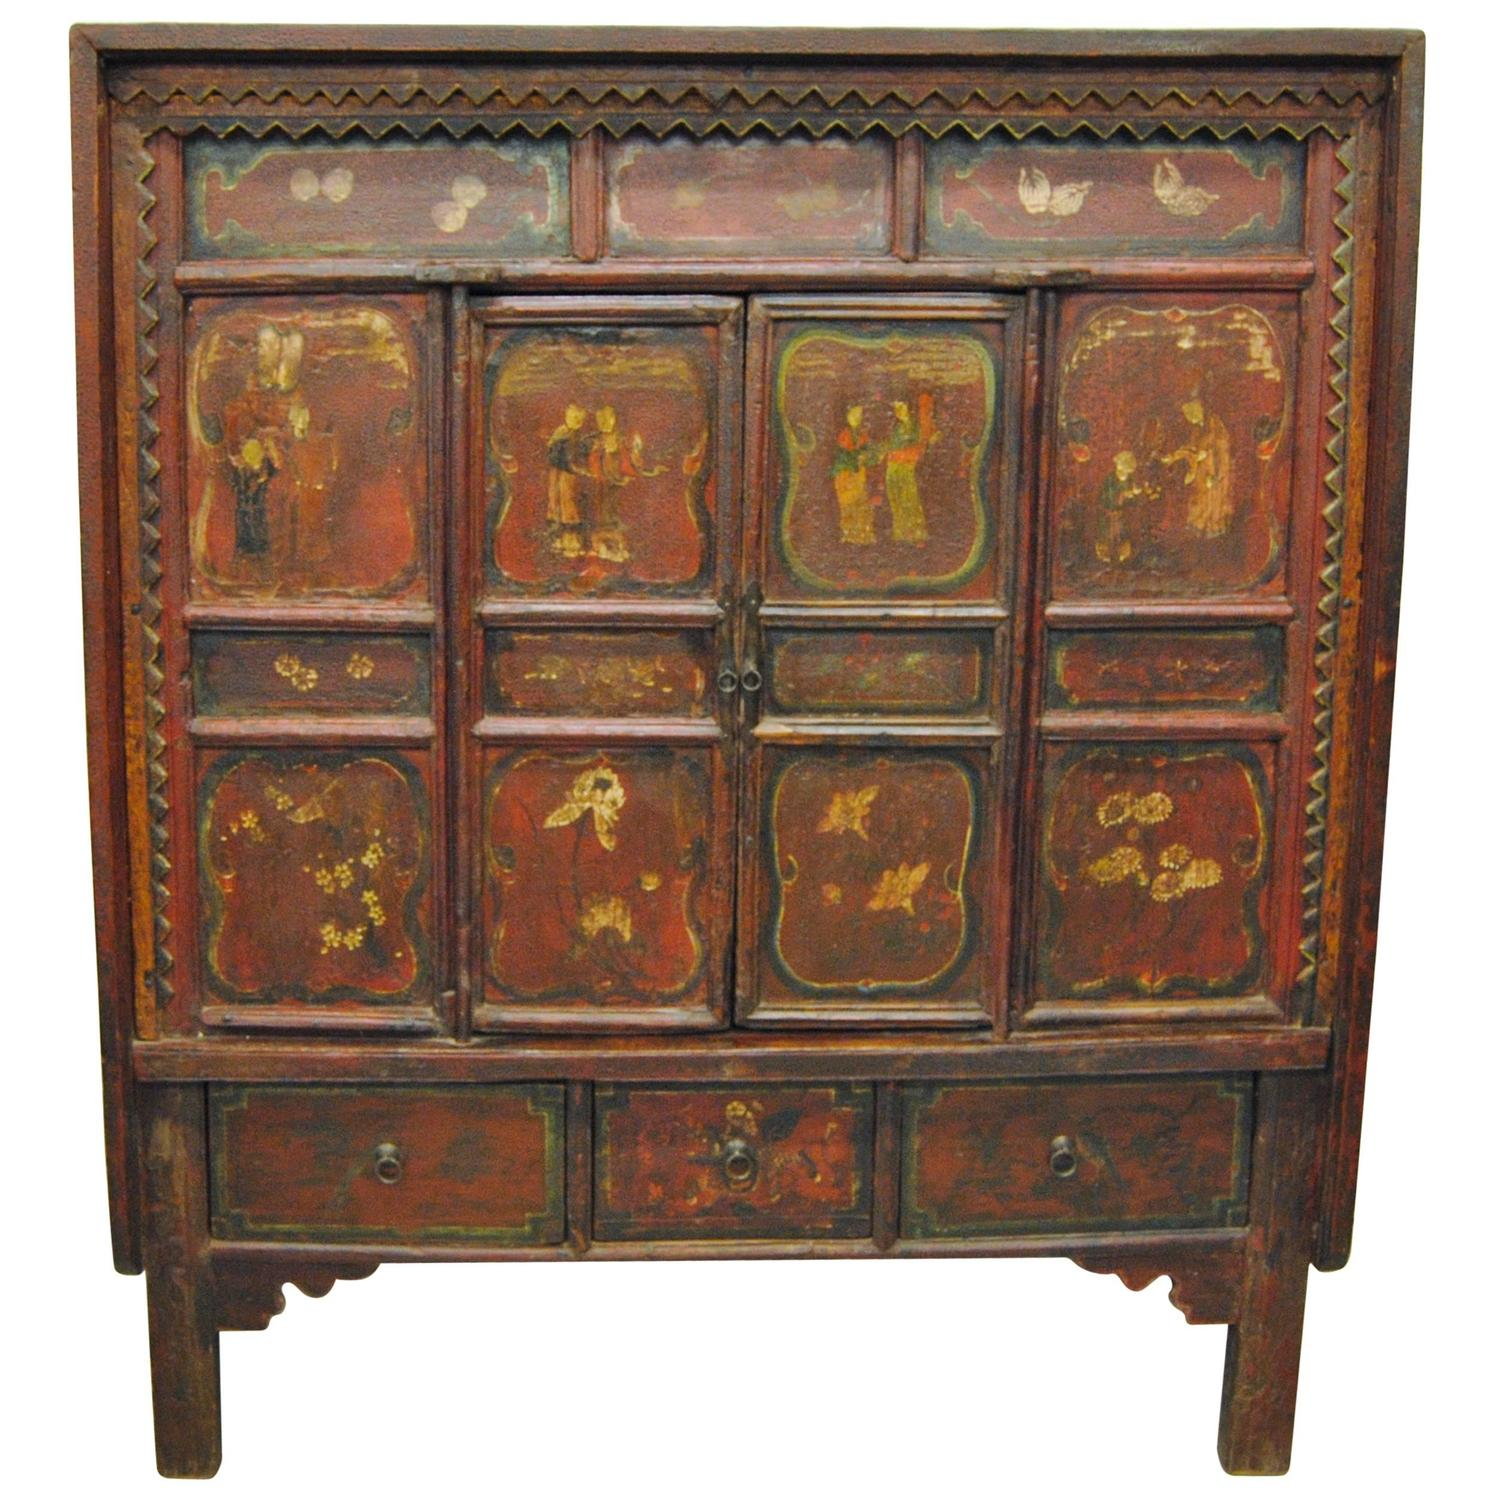 Antique chinese furniture for sale antique furniture for Oriental furniture for sale